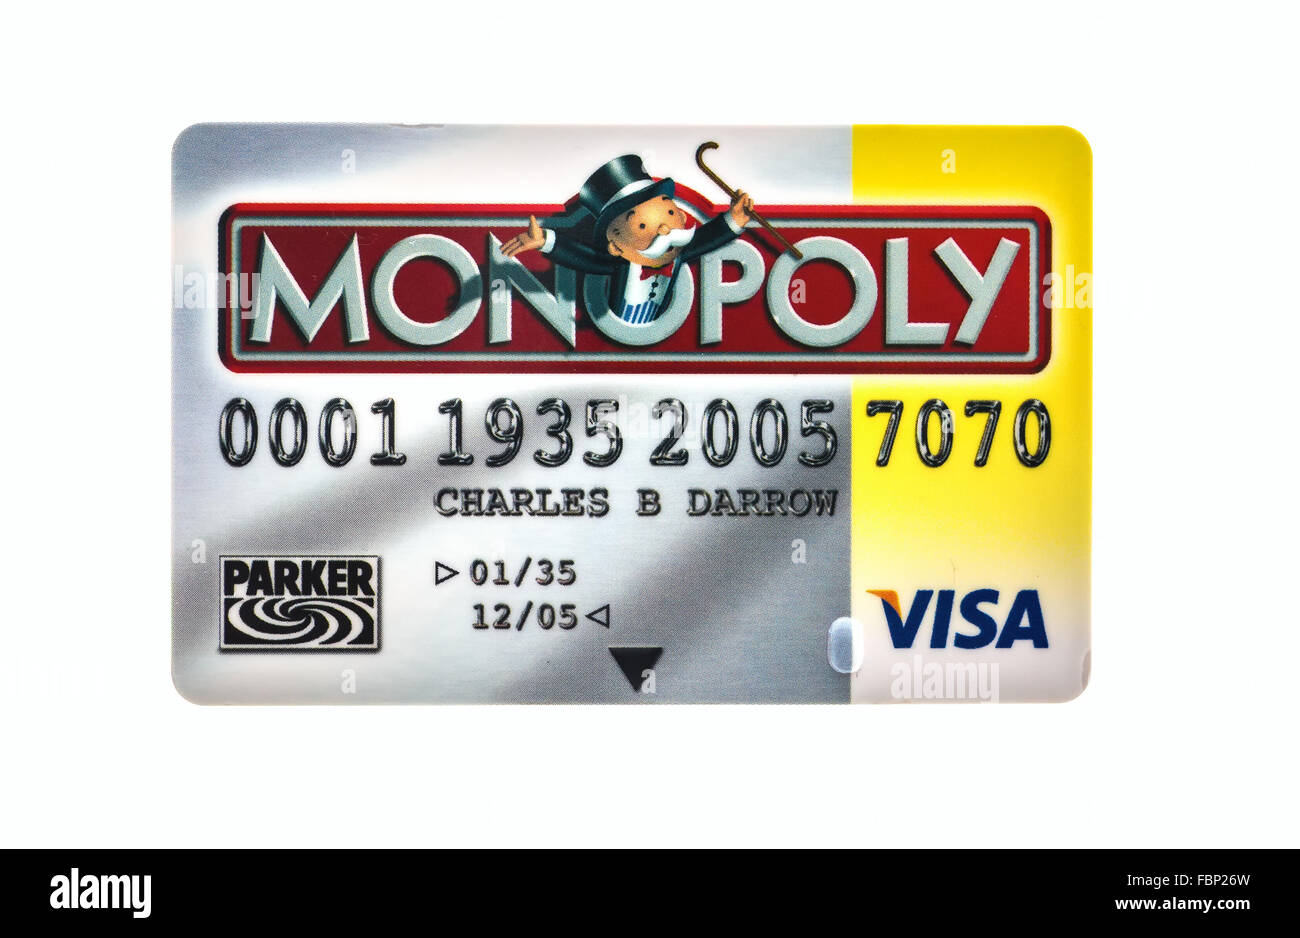 Monopoly credit card the classic trading game from parker brothers was first introduced to america in 1935